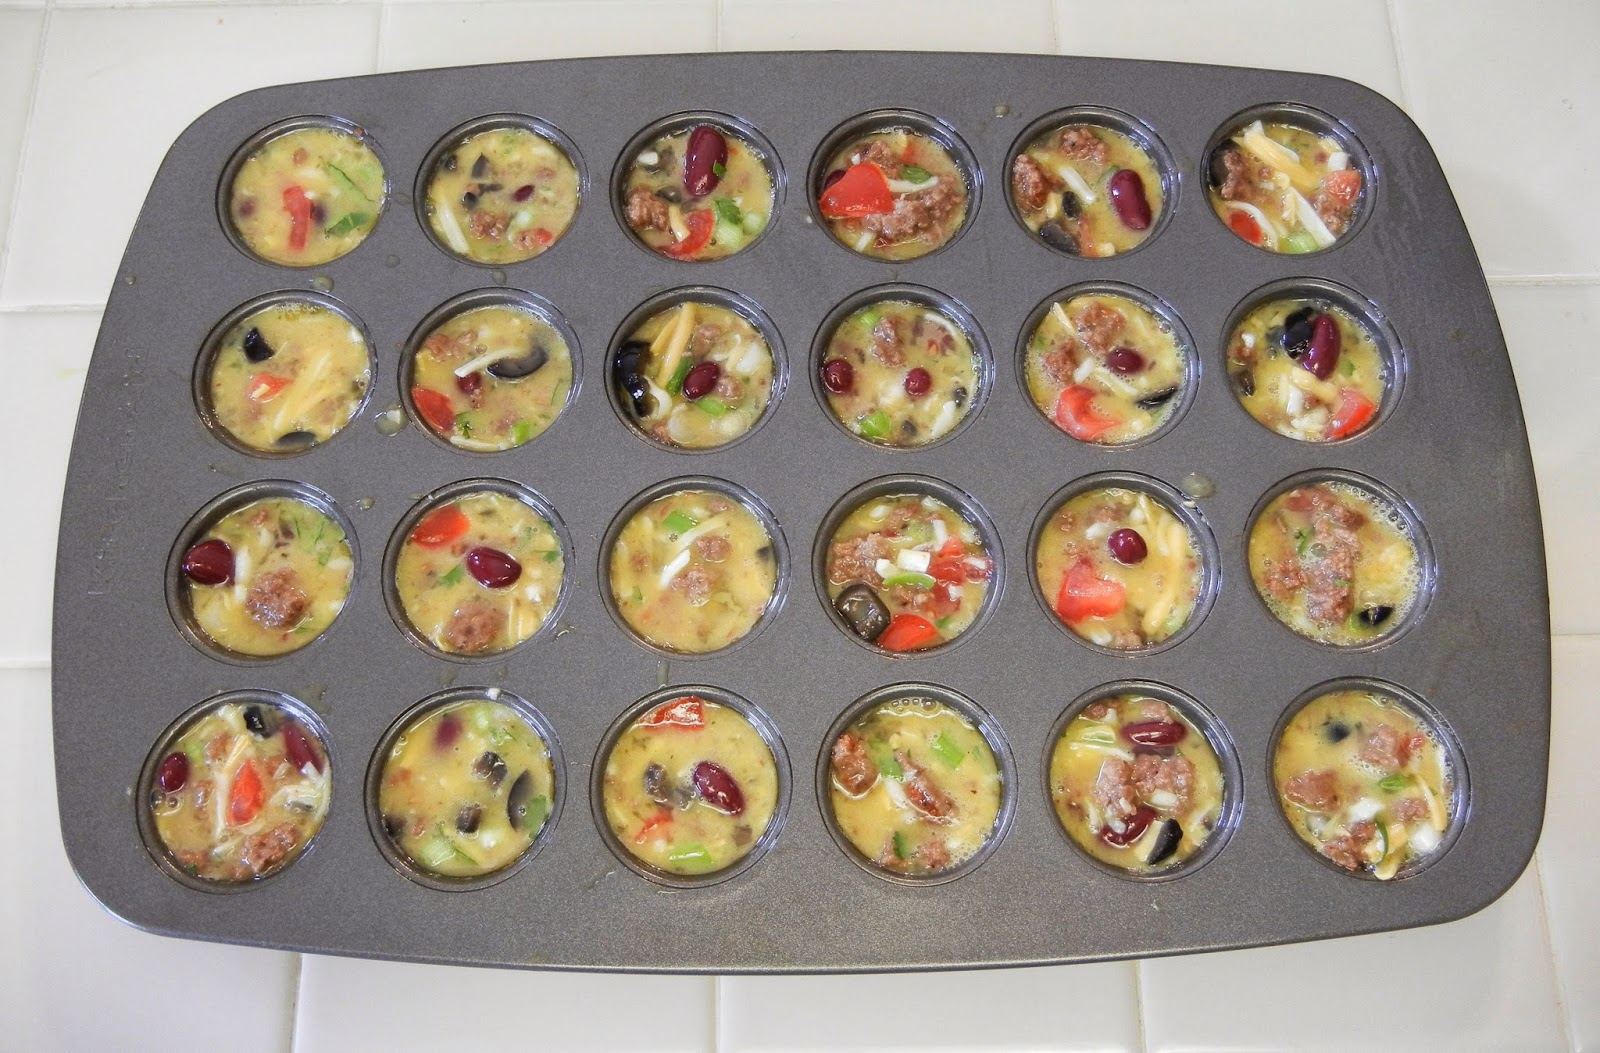 Eggface+Taco+Bites+Crustless+Quiche+Low+Carb+2 Weight Loss Recipes Dinner and the Leftovers